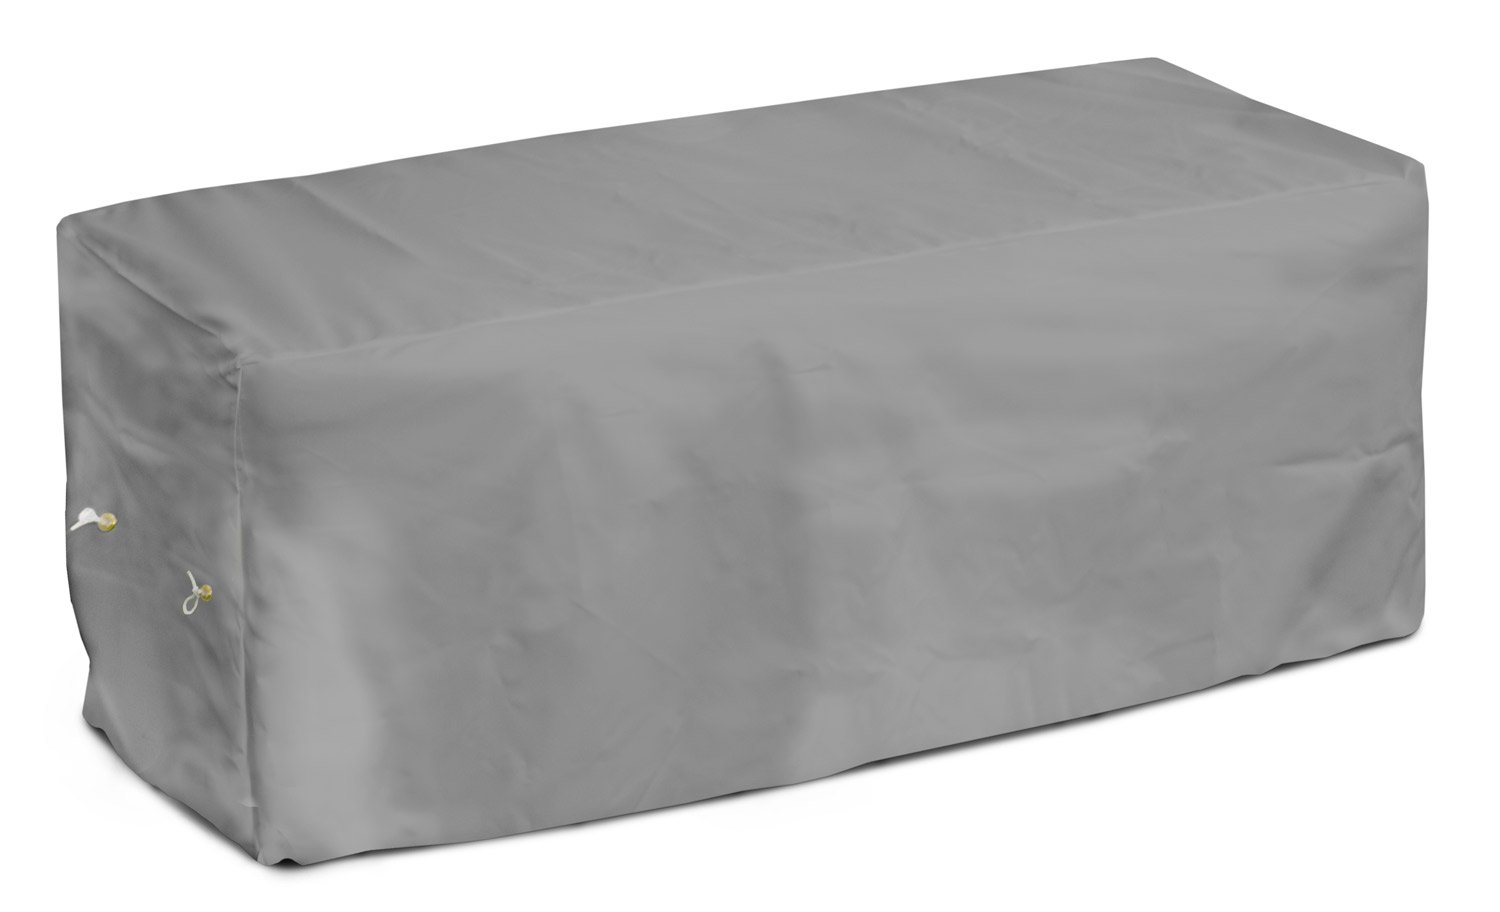 KoverRoos Weathermax 84214 6-Feet Garden Seat Cover, 72-Inch Width by 28-Inch Diameter by 18-Inch Height, Charcoal by KOVERROOS (Image #5)